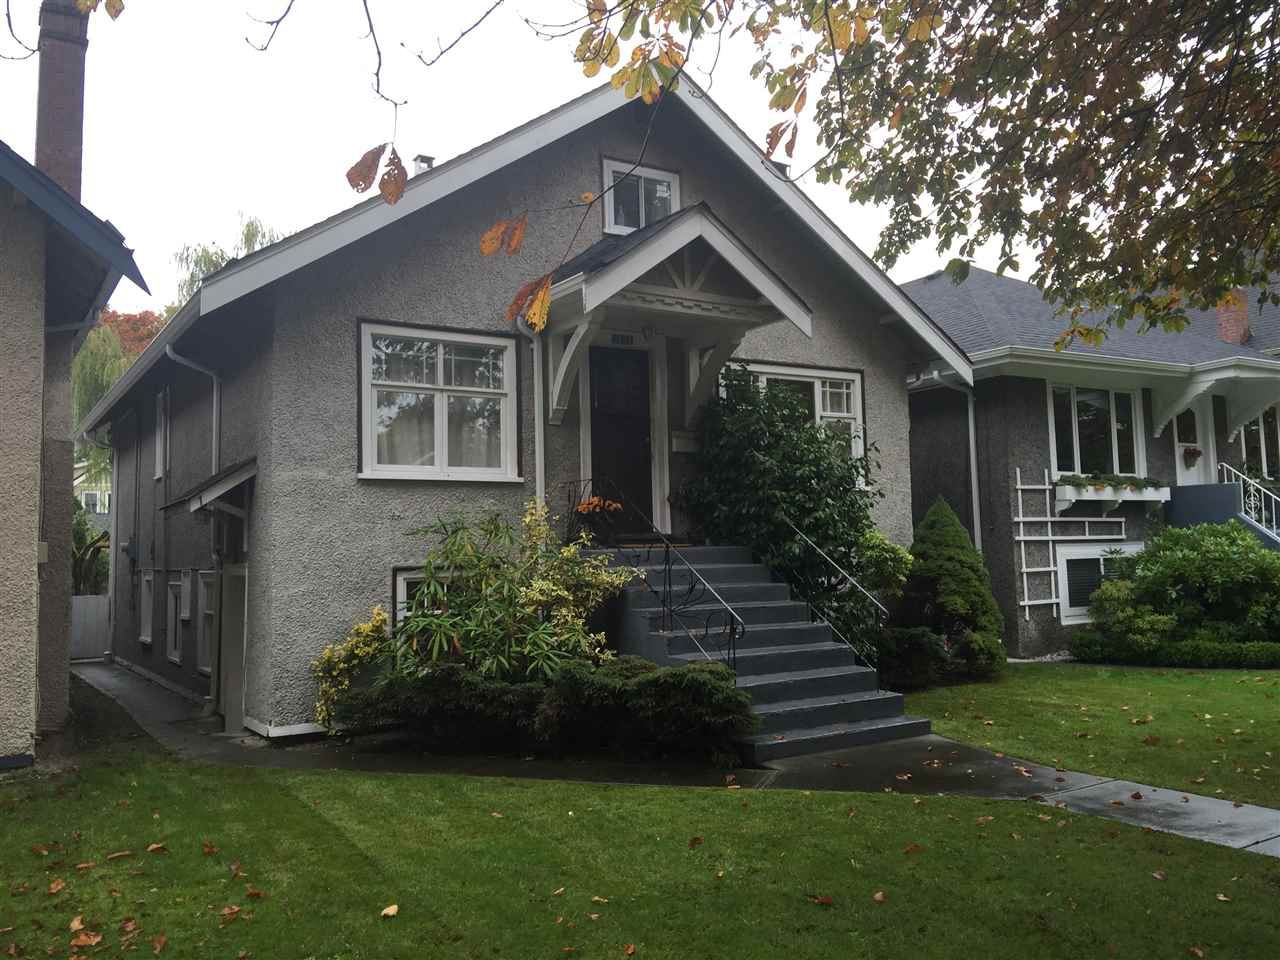 Main Photo: 3233 W 14TH AVENUE in Vancouver: Kitsilano House for sale (Vancouver West)  : MLS®# R2007422